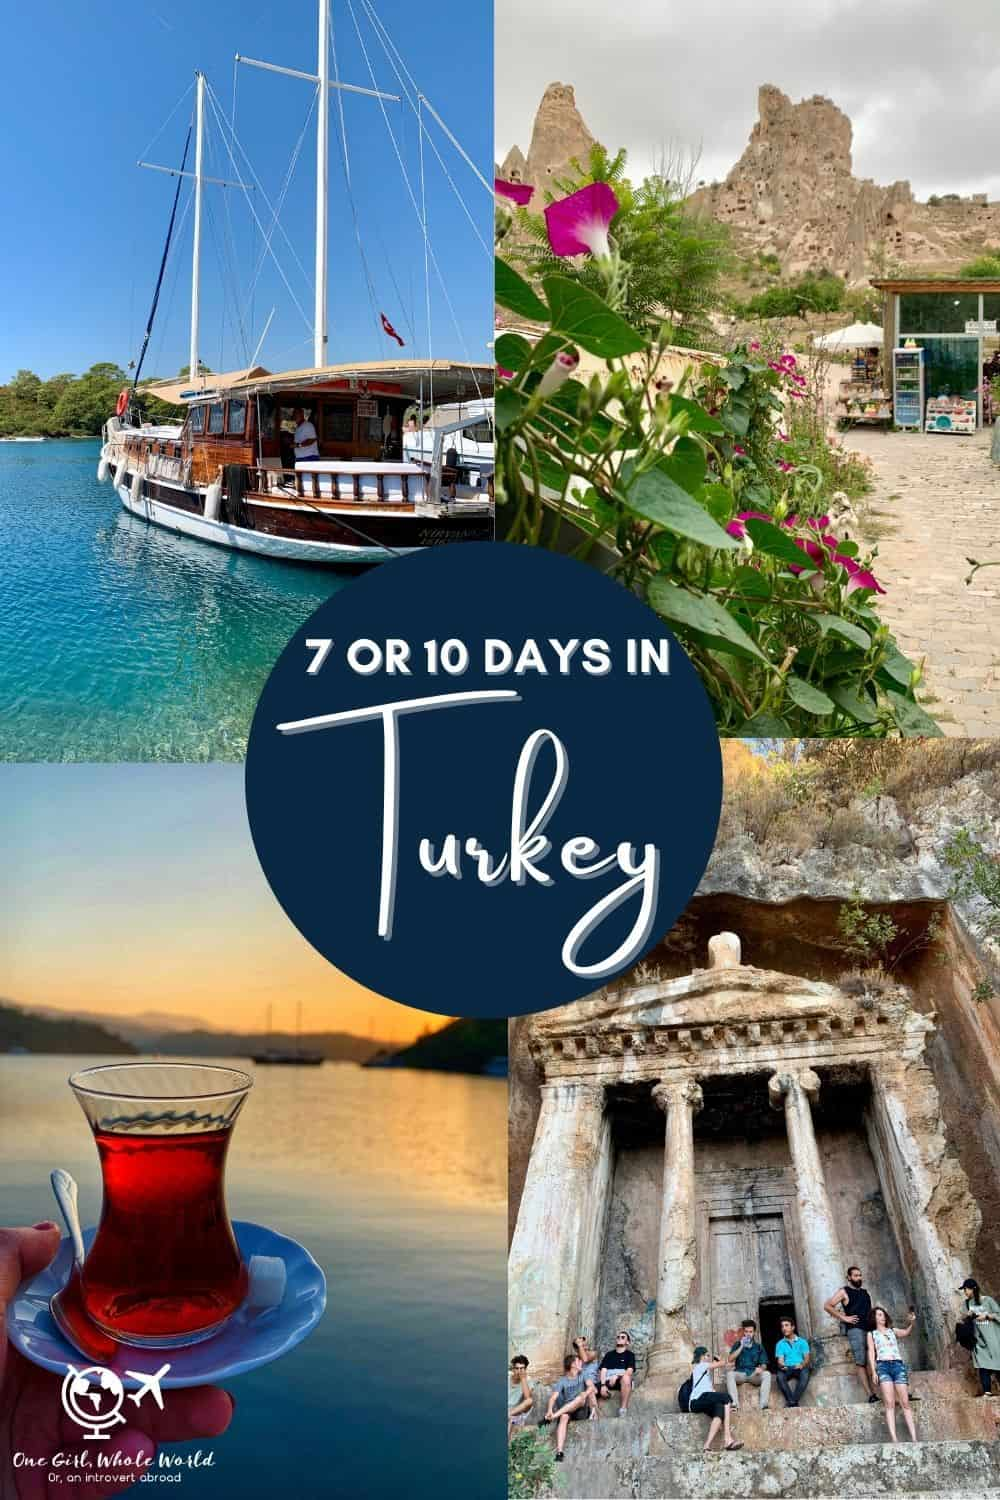 Planning a 7-Day (or 10-Day) Turkey Itinerary | I did an epic 35th birthday trip to Turkey, and share detailed info on how to plan your own 7-day Turkey itinerary...what to do with a week in Turkey, where to go, 10 days in Turkey, Turkey itinerary ideas. 7 days in Turkey will make you fall in love! #turkey #itinerary #traveltips